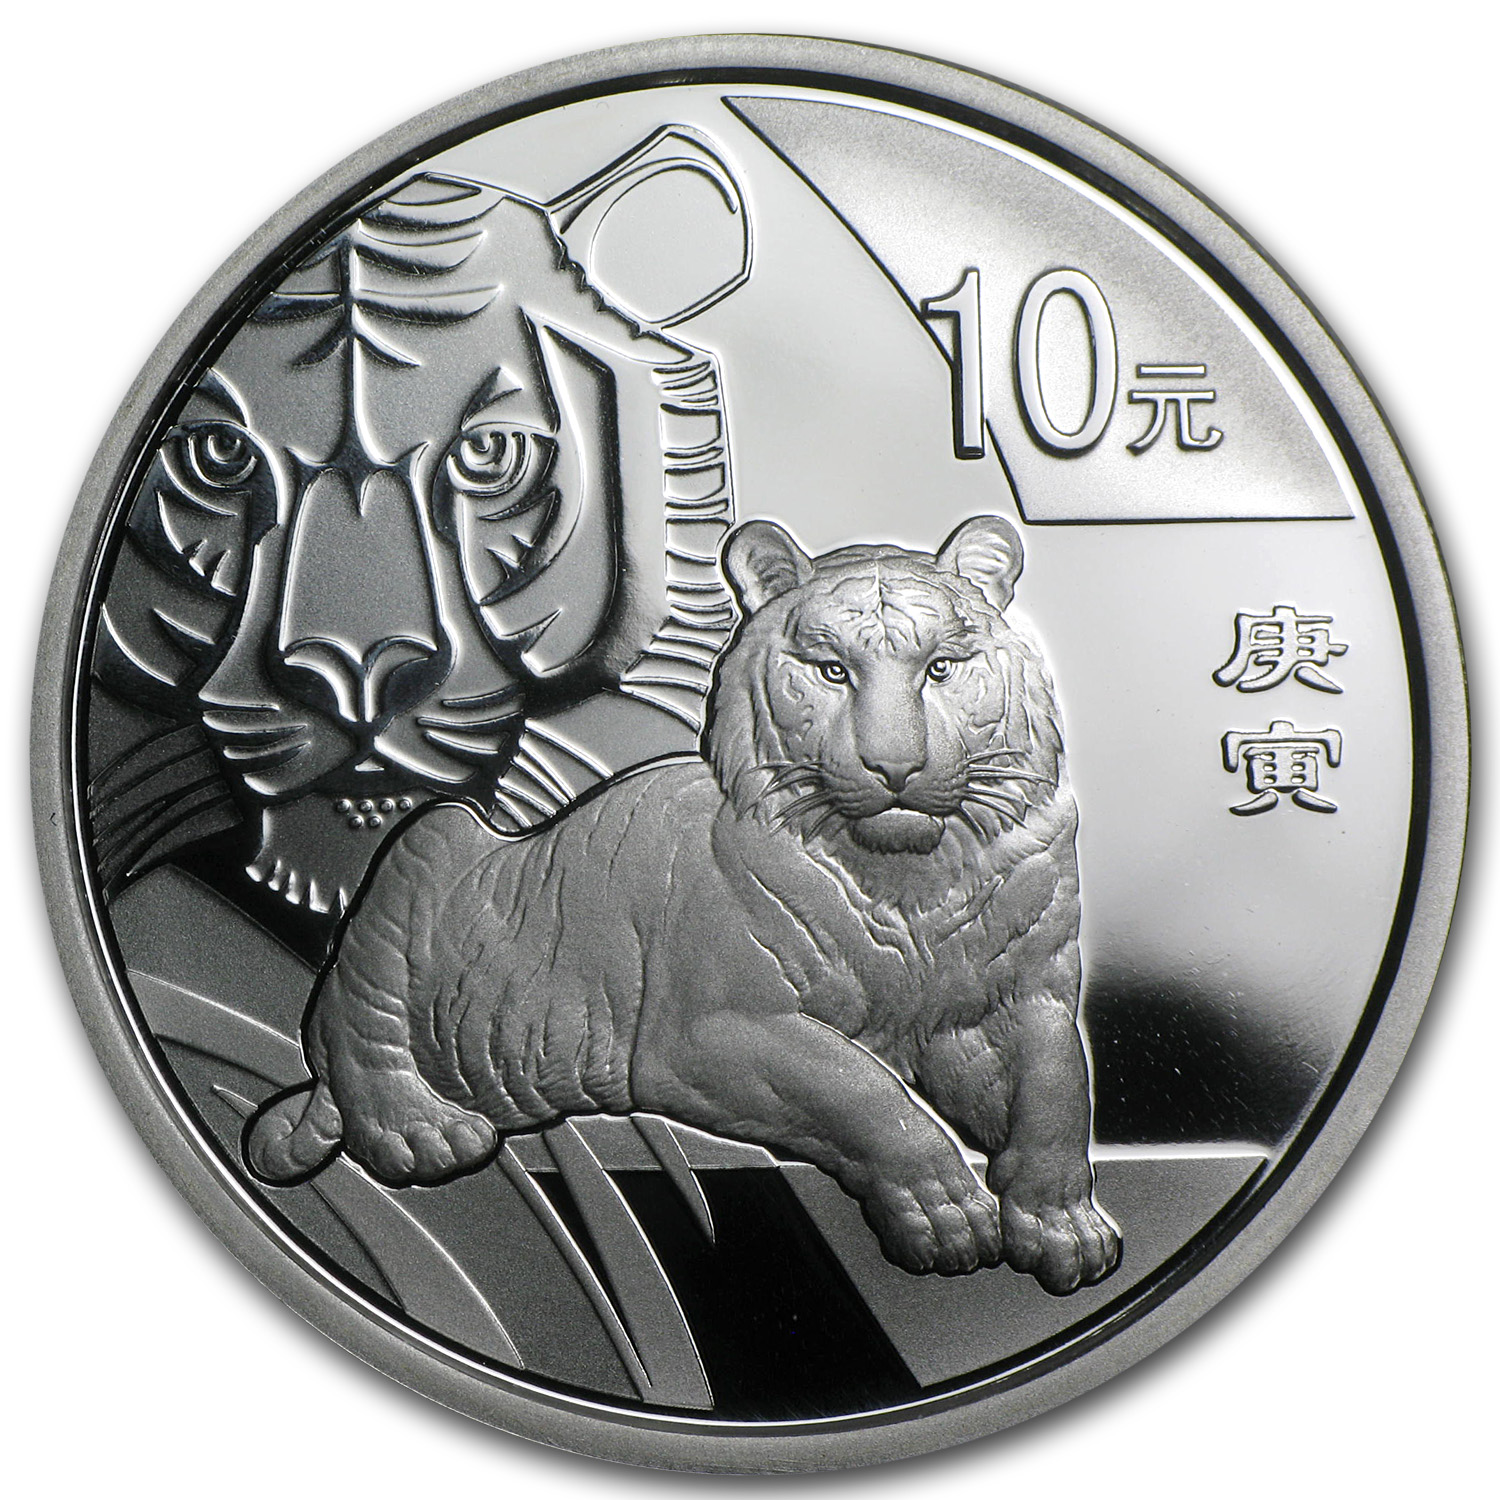 2010 China 1 oz Silver Tiger Proof (w/Box & COA)